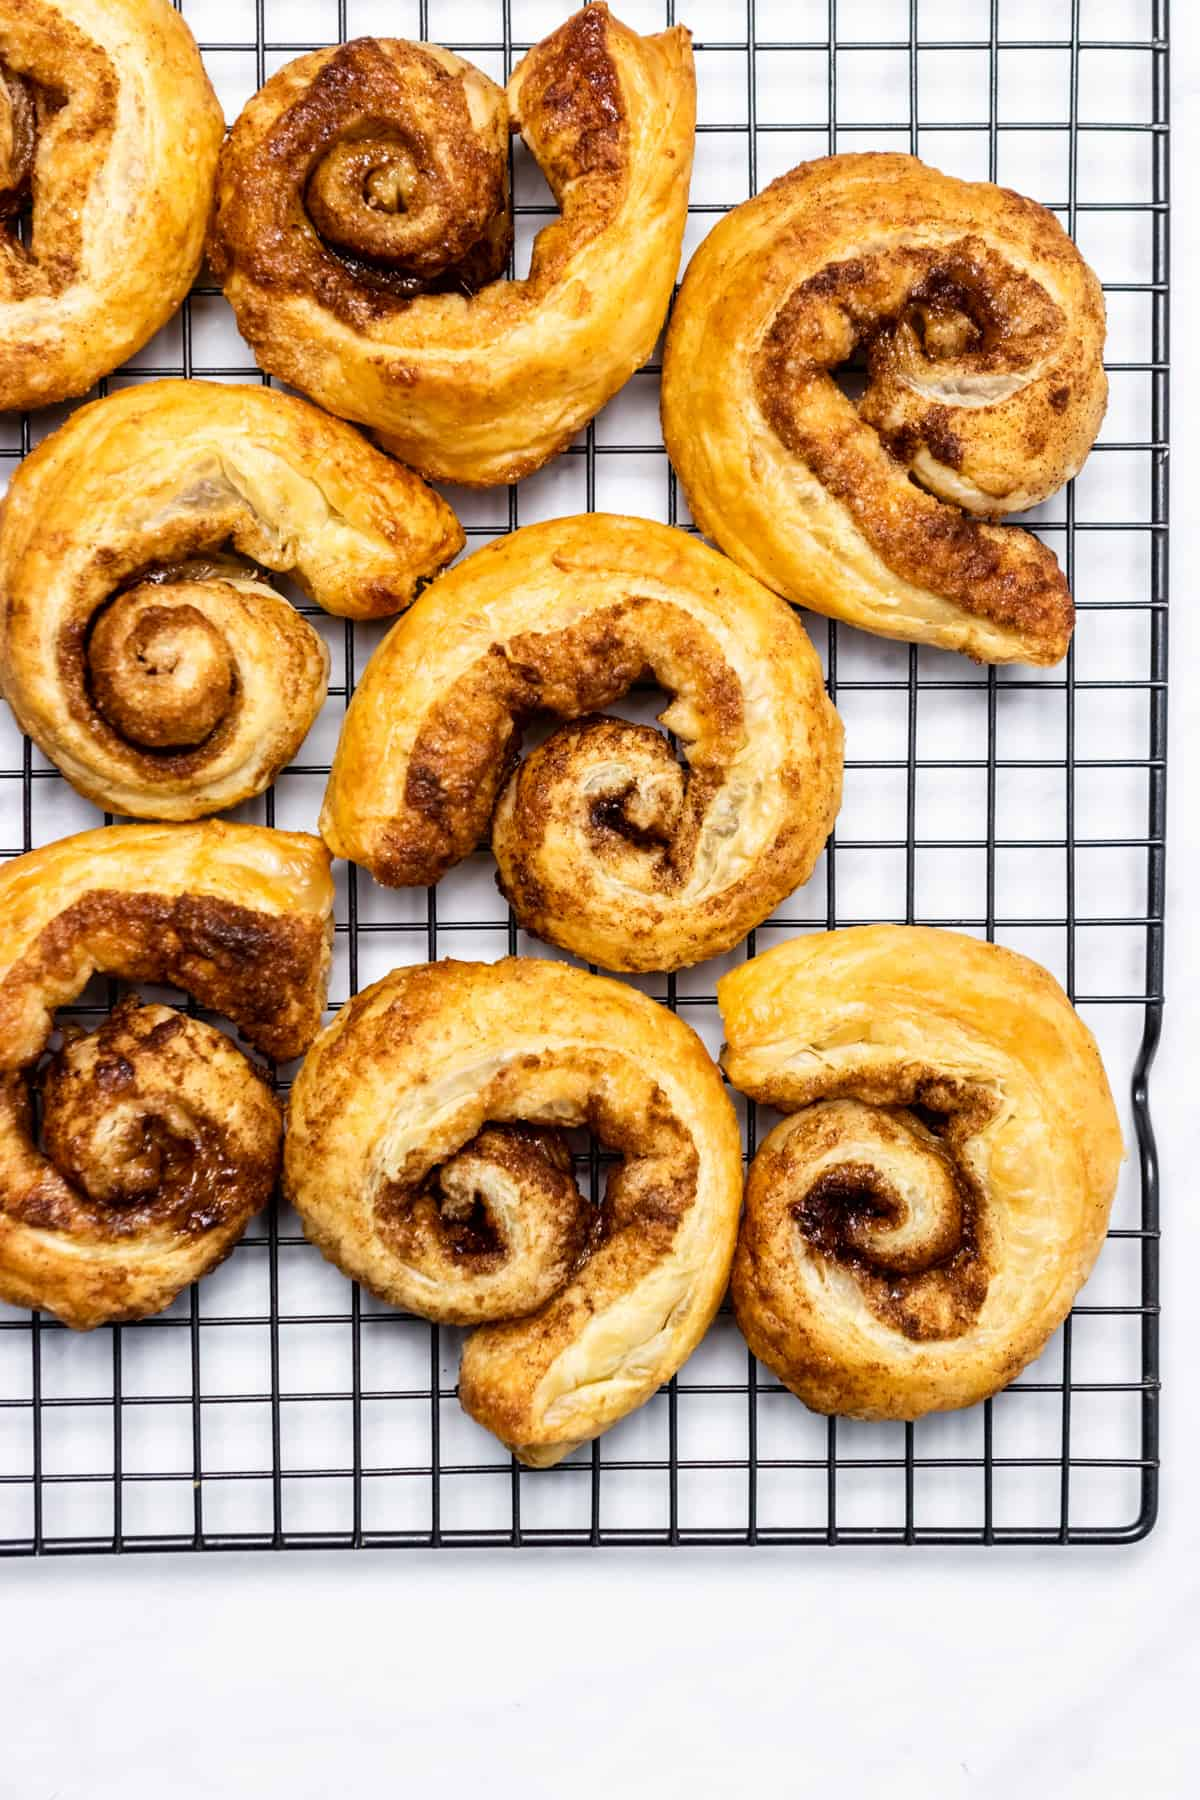 Puff pastry cinnamon rolls cooling on cooling rack.